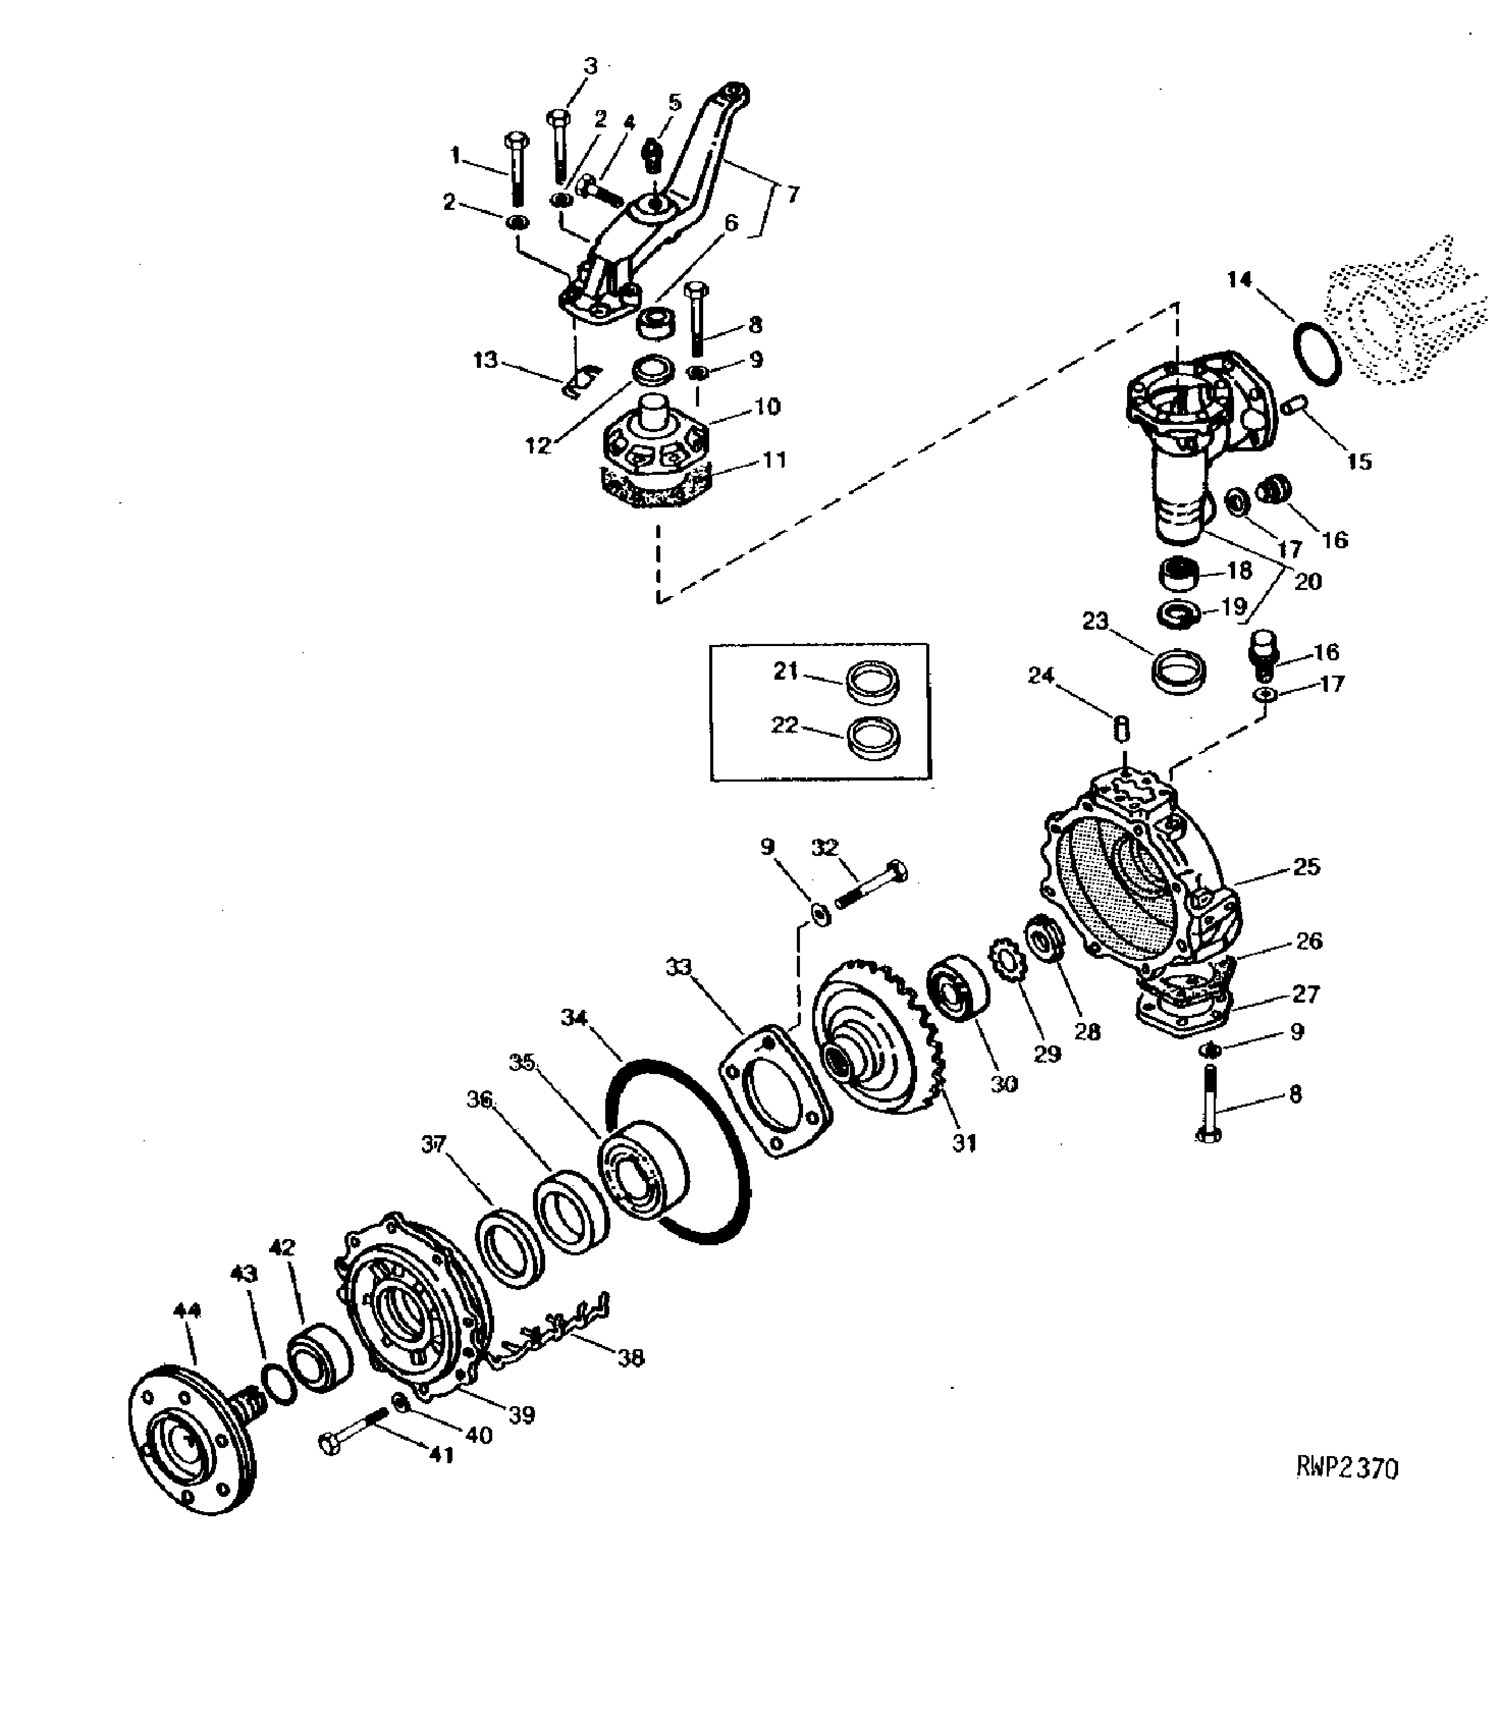 front axle seals bearings for john deere pact tractors John Deere 265 Wiring Diagram front axle bearing 4wd